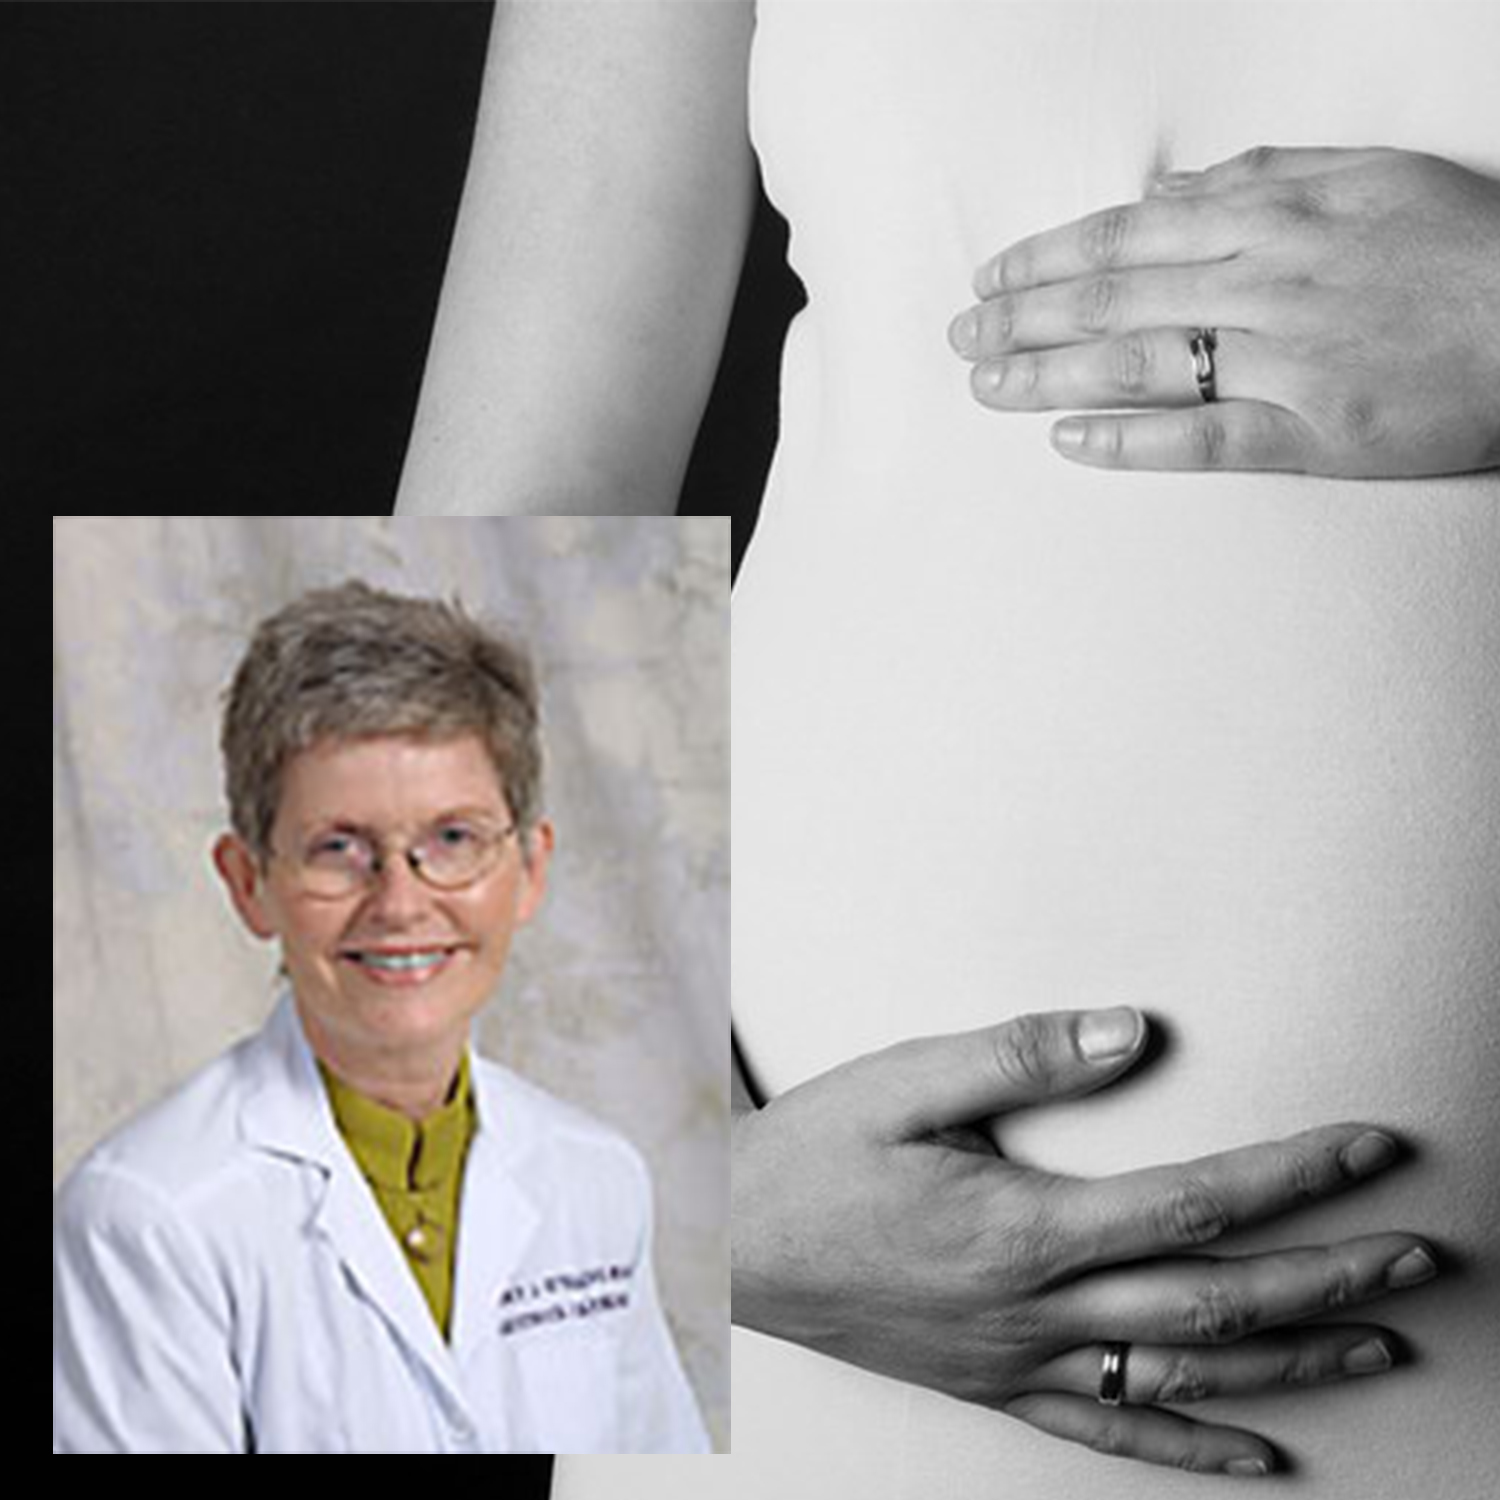 Ep. 18 – Abortion pill reversal and the myth of late term abortion